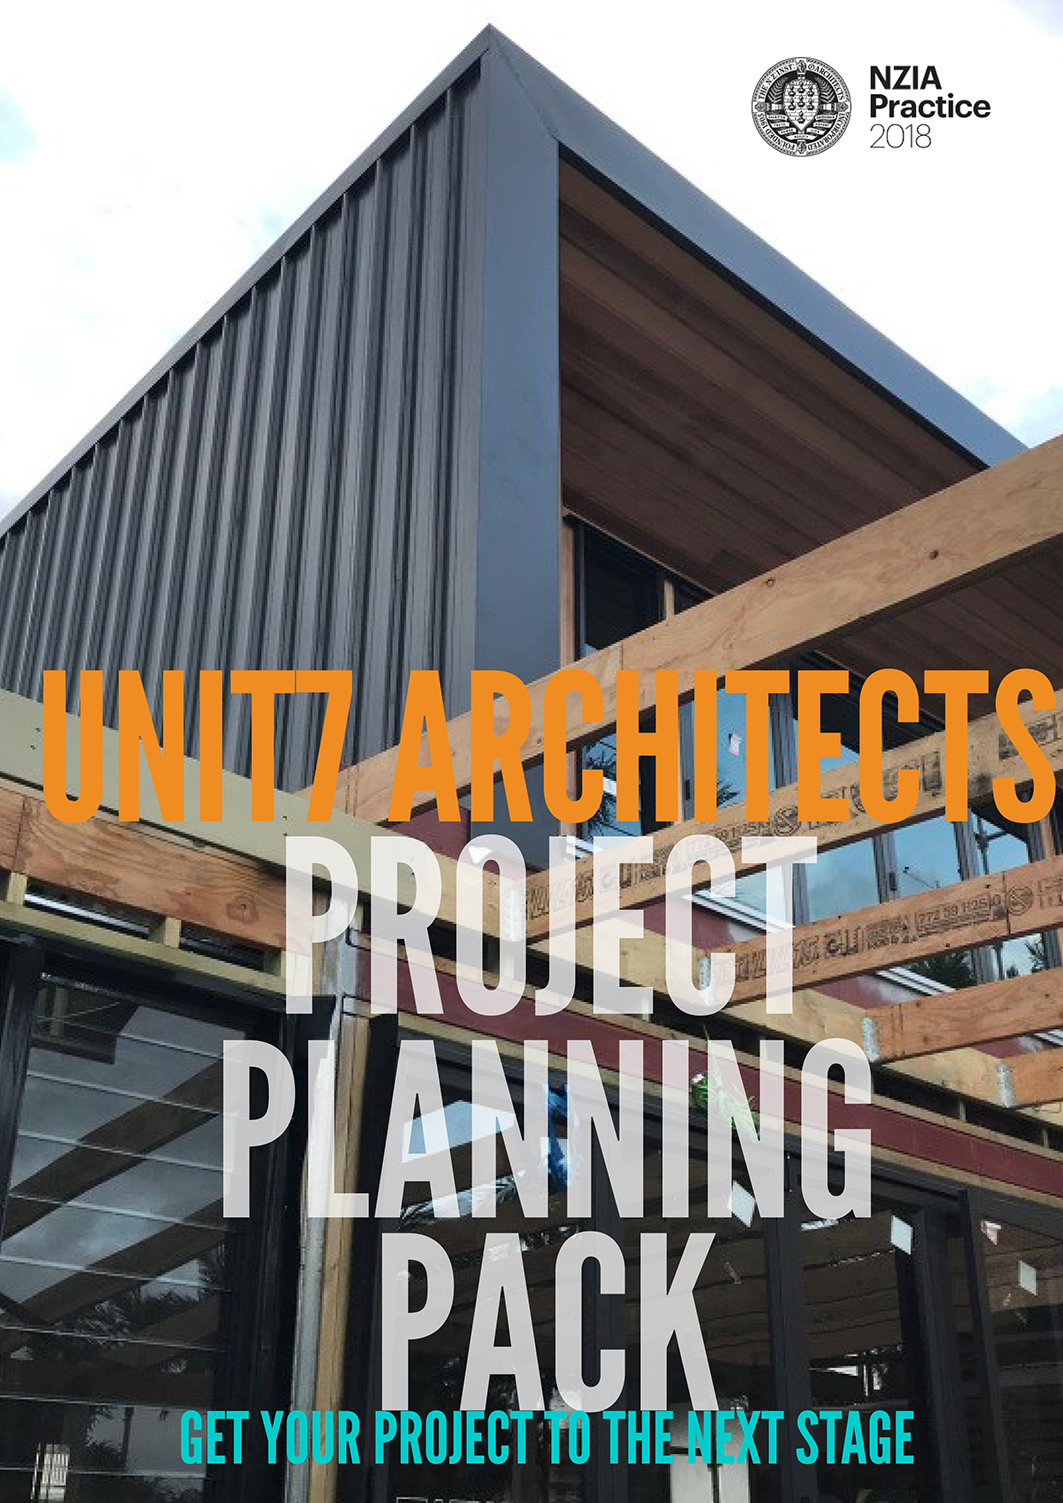 PROJECT PLANNING PACK - Planning a project? Try our Project Planning Pack.